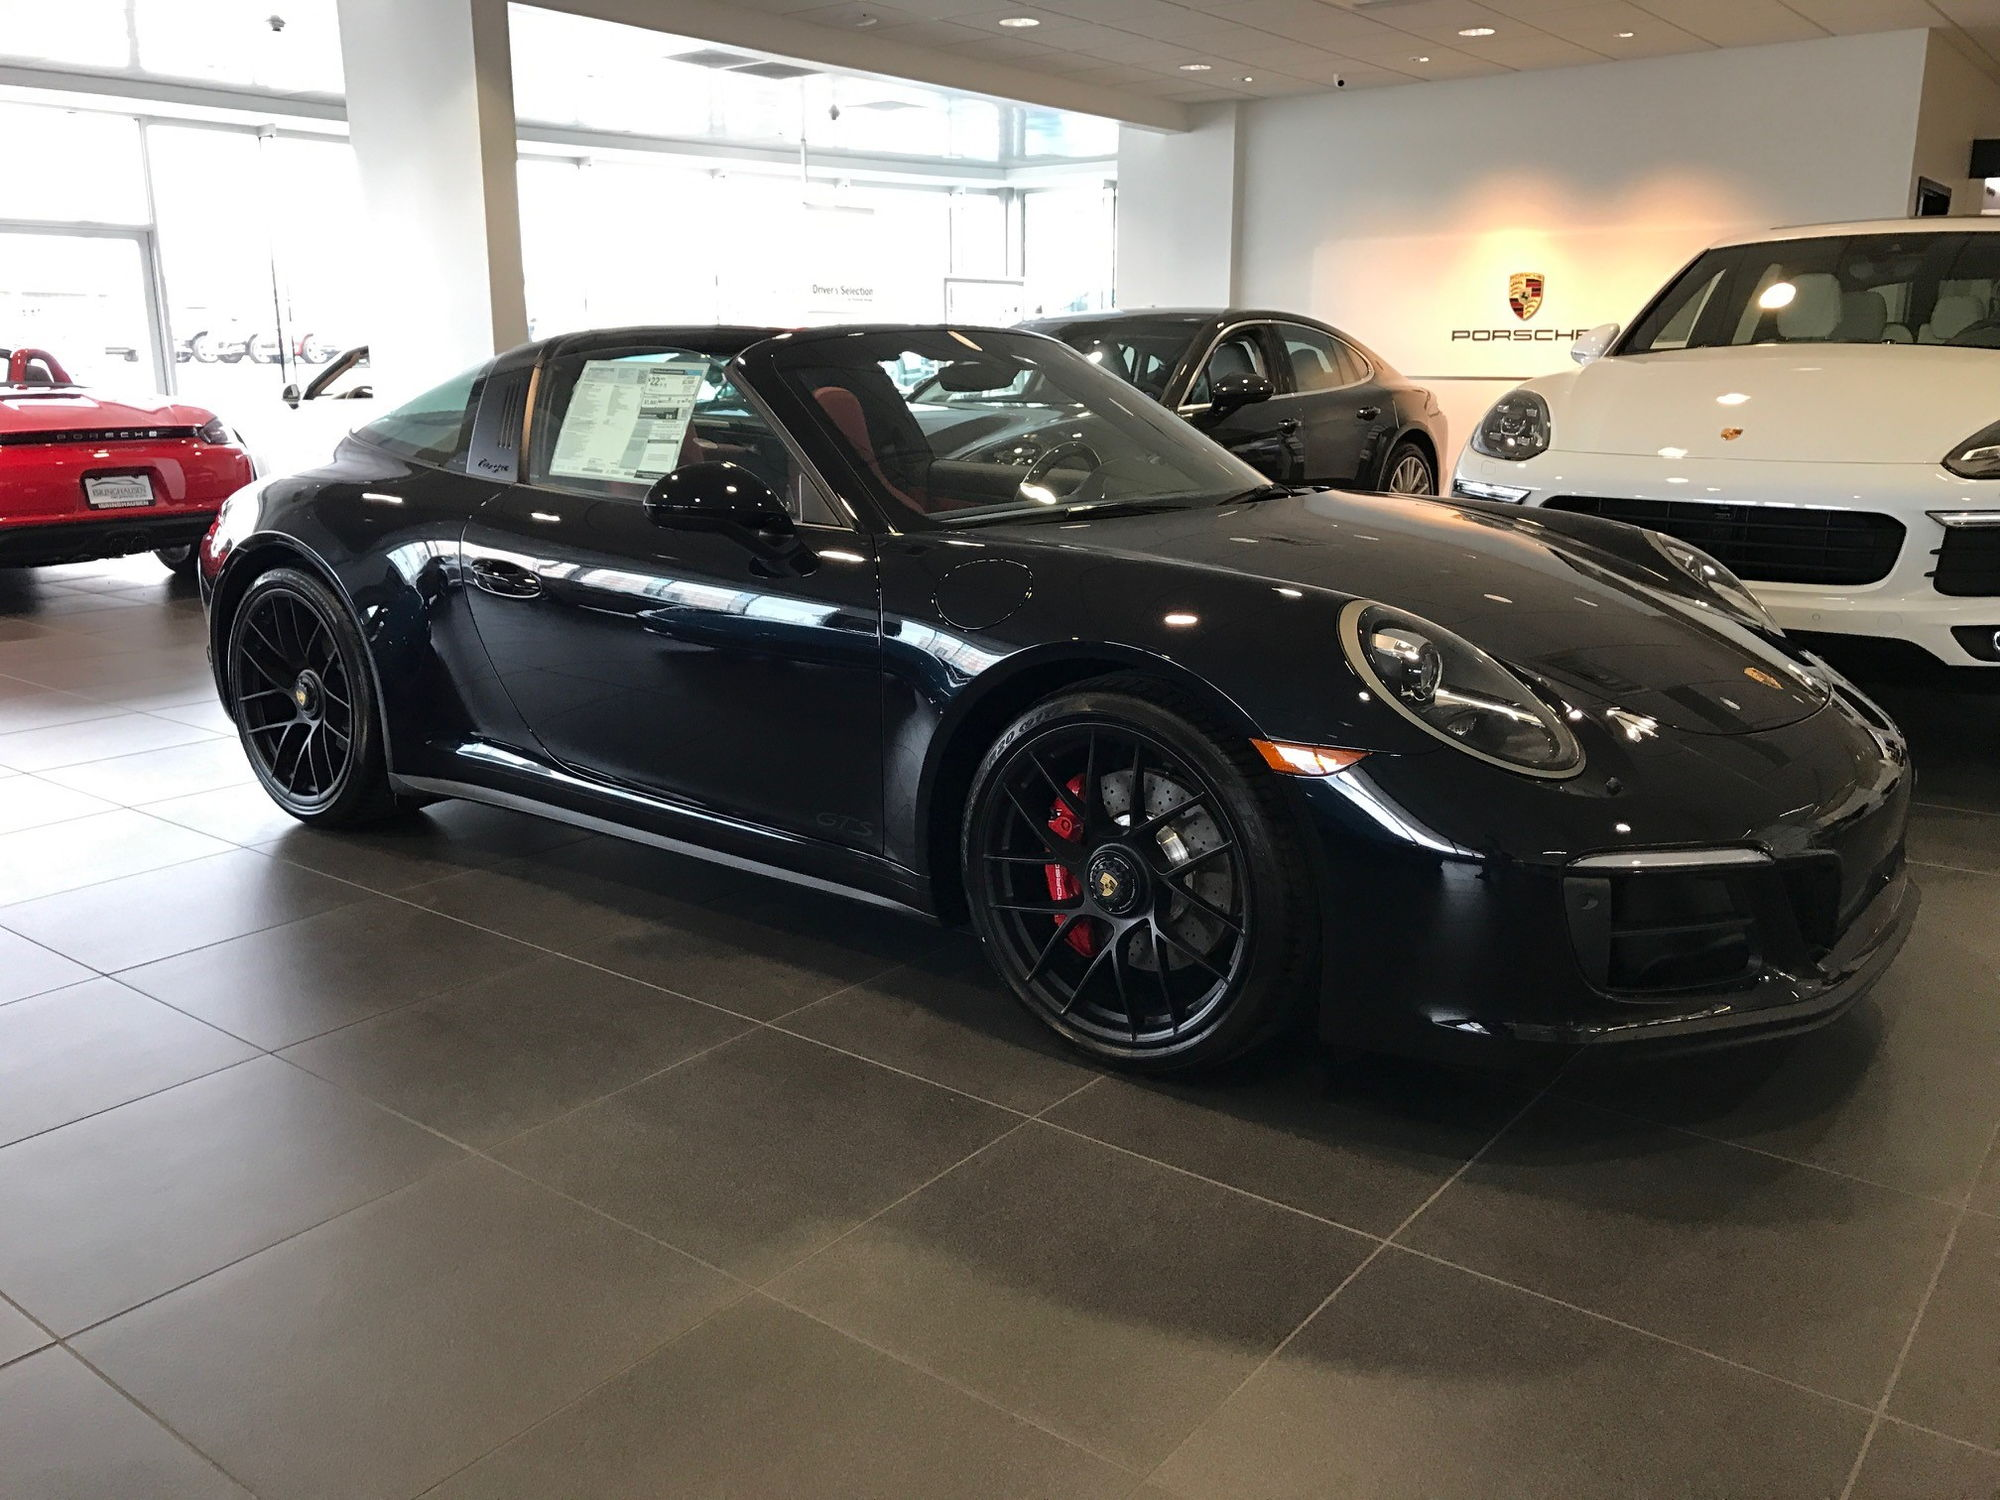 Dealer Inventory 2017 Porsche 911 Targa 4 GTS - Black/Red with PDK on 2017 porsche boxster, 2017 porsche gt3, 2017 ford gt targa, 2017 porsche cayman, 2017 porsche cayenne,